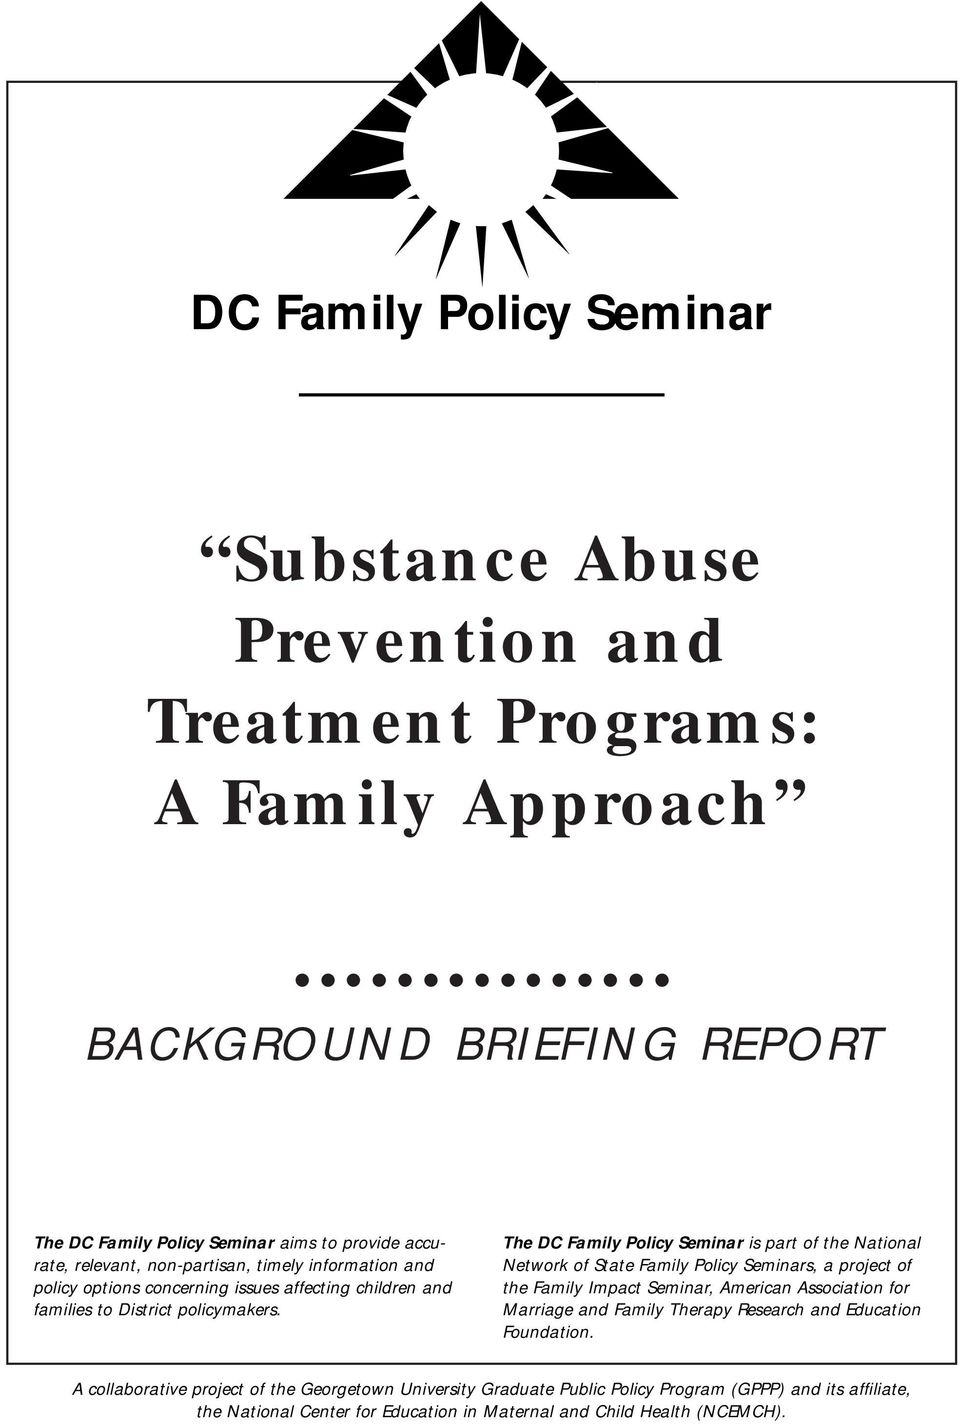 The DC Family Policy Seminar is part of the National Network of State Family Policy Seminars, a project of the Family Impact Seminar, American Association for Marriage and Family